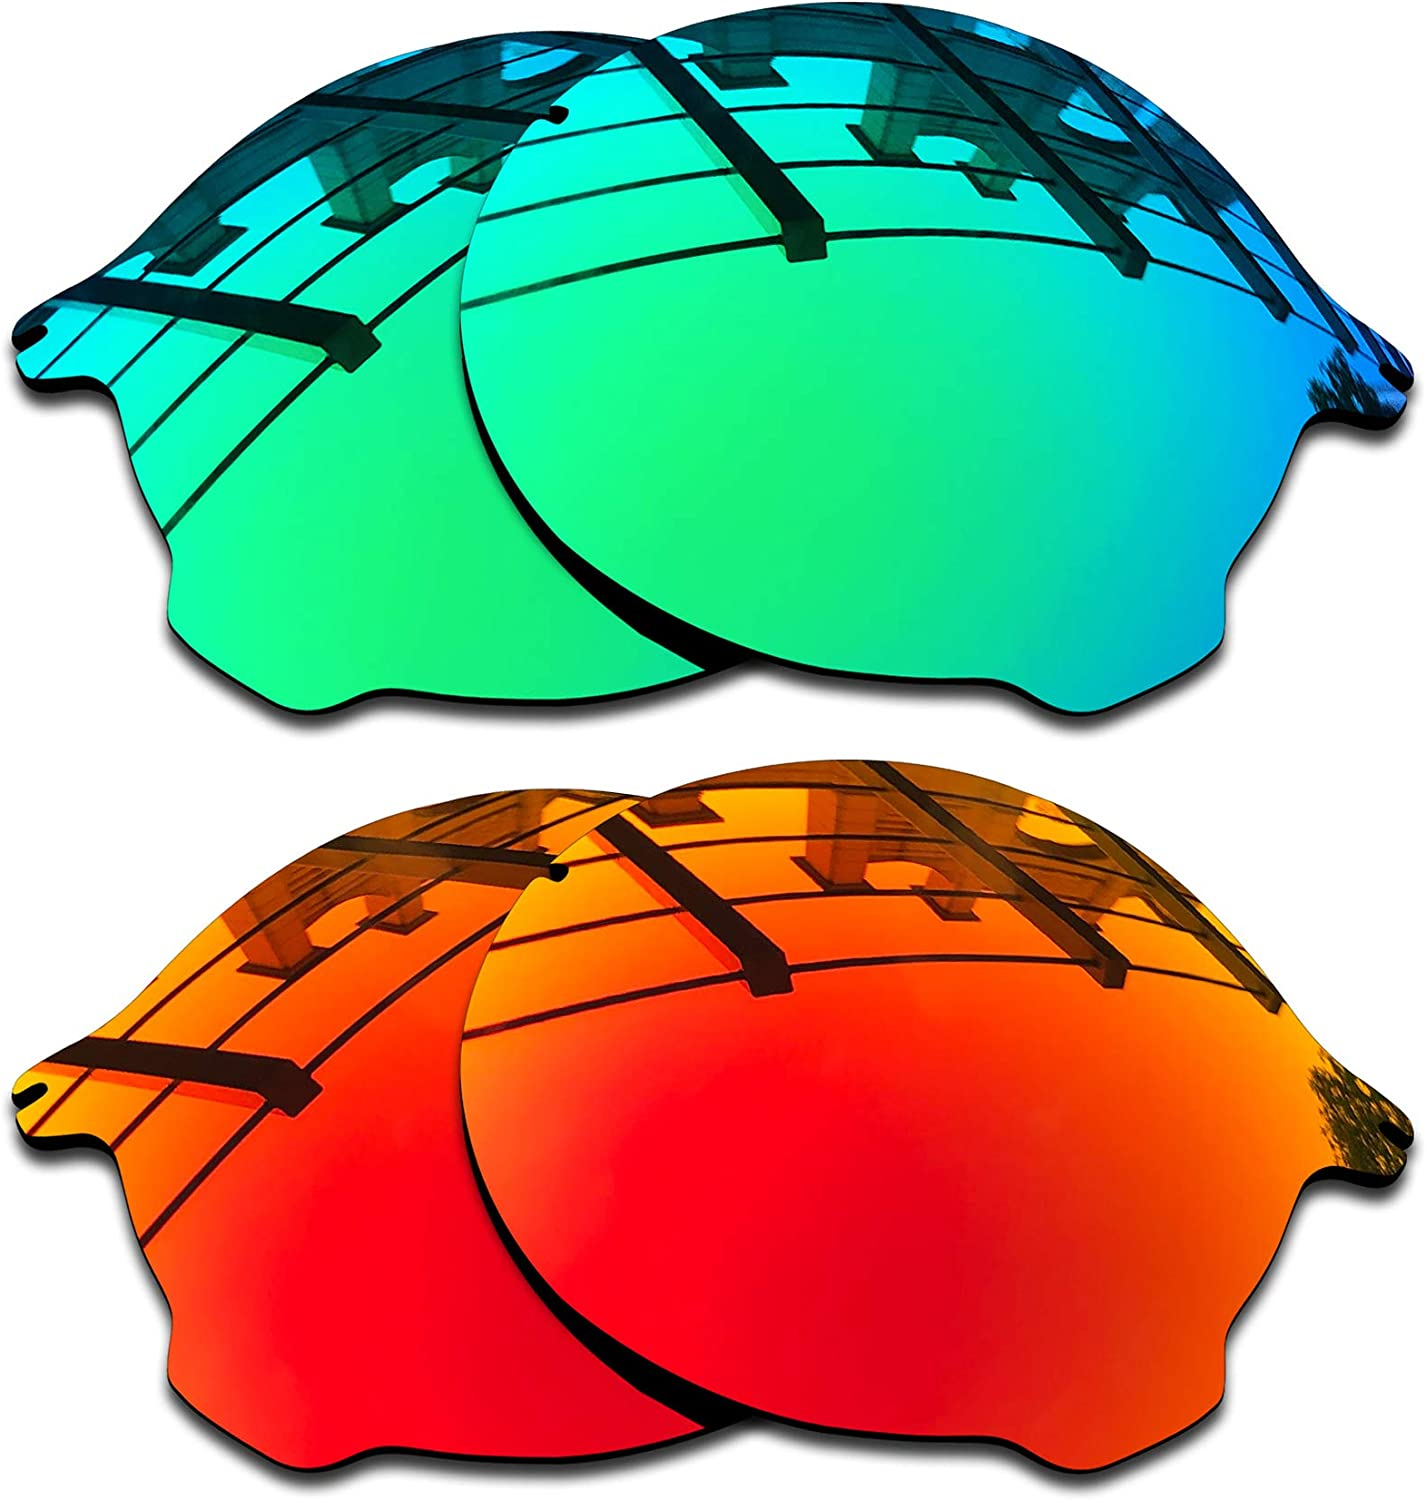 SEEABLE Premium Polarized Mirror Replacement Lenses for Oakley Tailend OO4088 Sunglasses